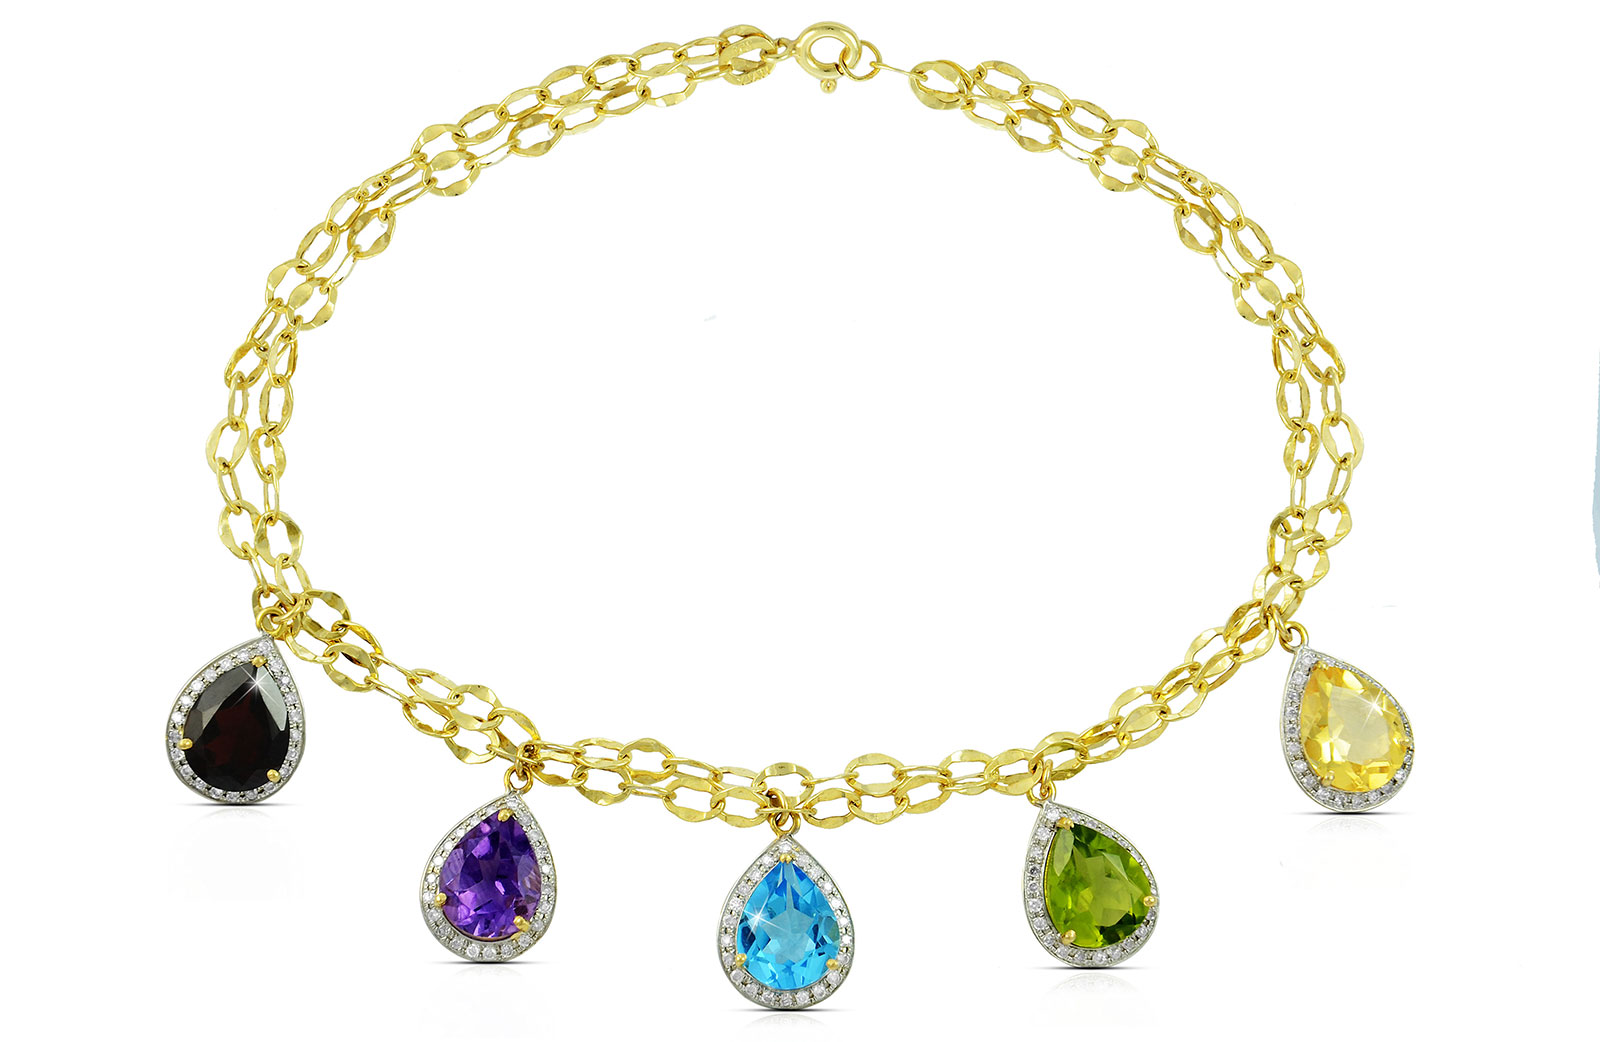 Vera Perla 18K  Gold 0.64Ct Genuine Diamonds, Garnet, Amethyst, Swiss Blue Topaz, Peridot, Citrine Bracelet